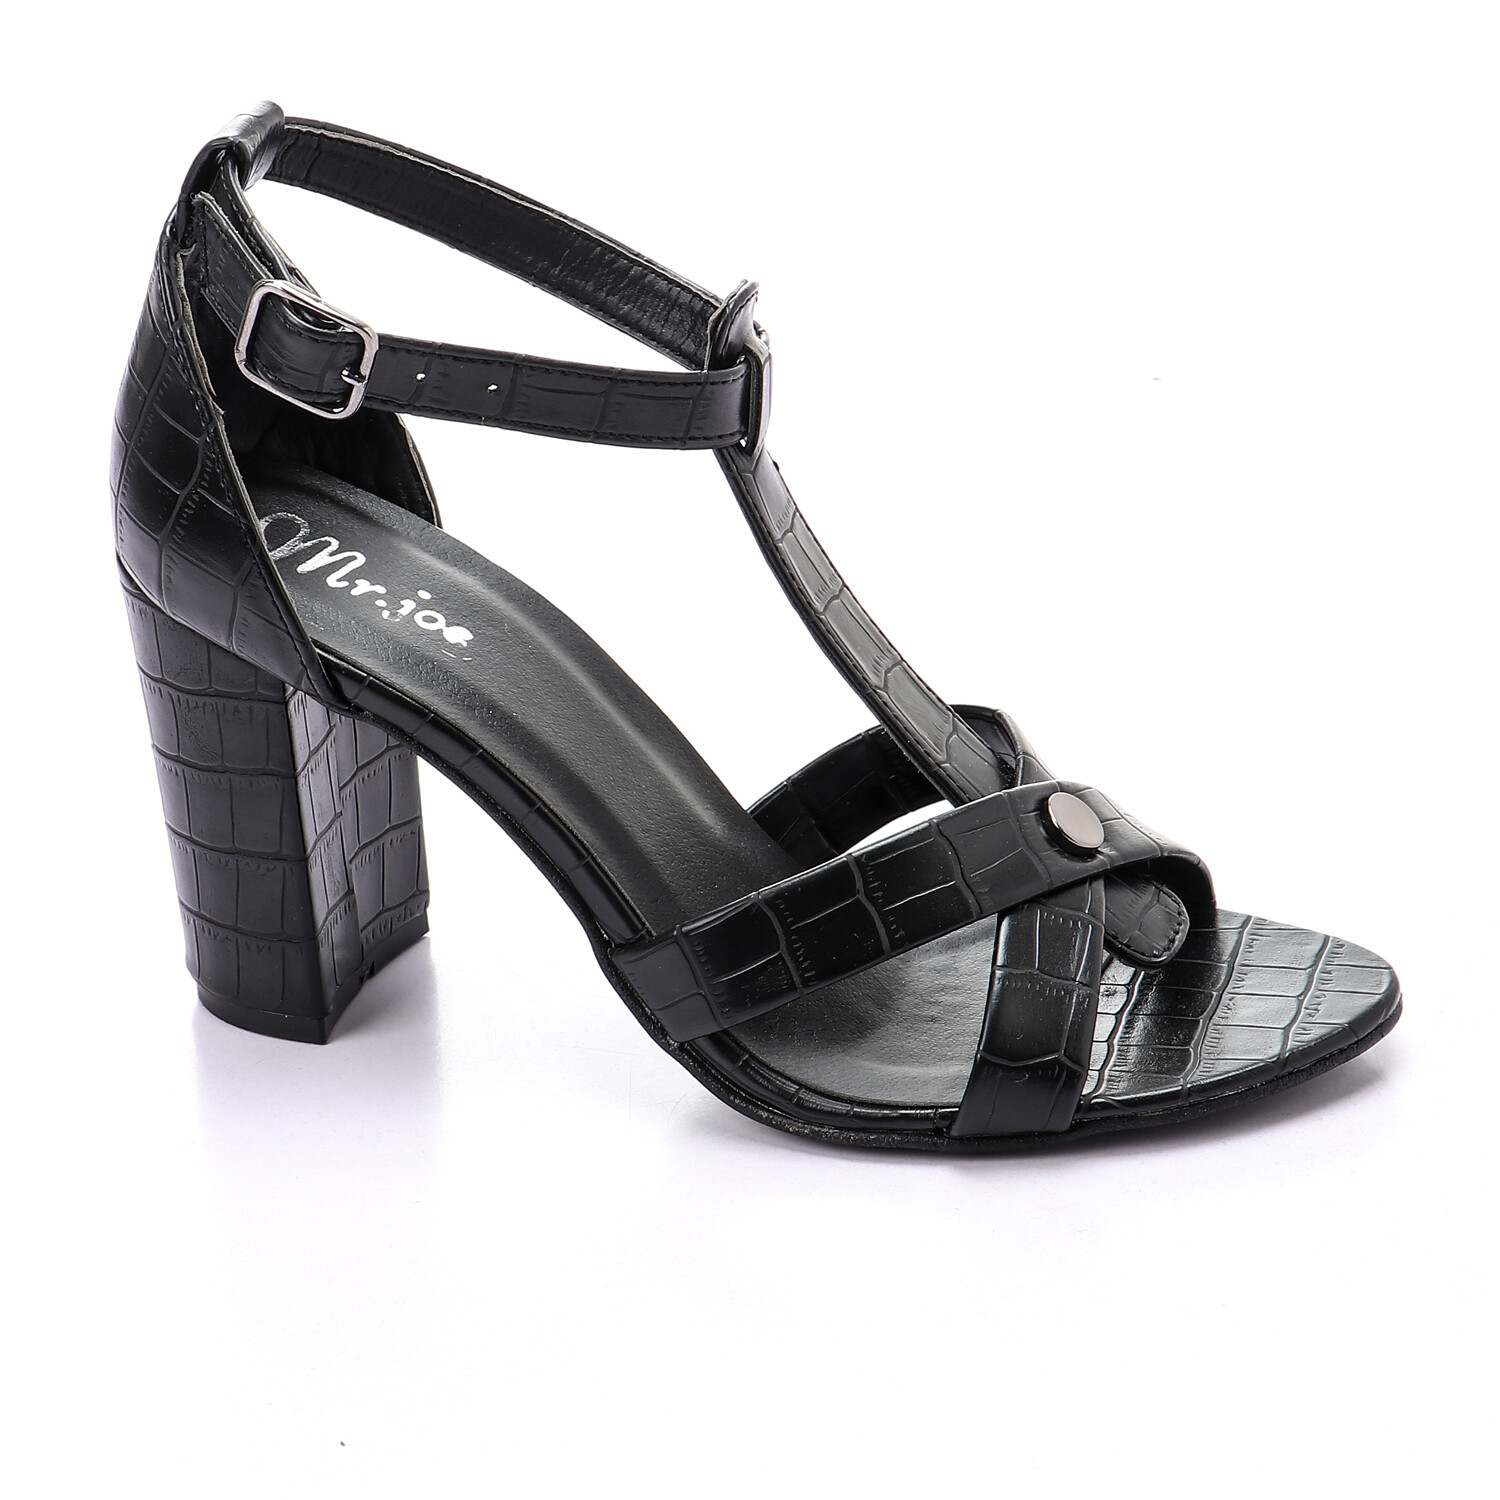 3440 Sandal - Black crocodie